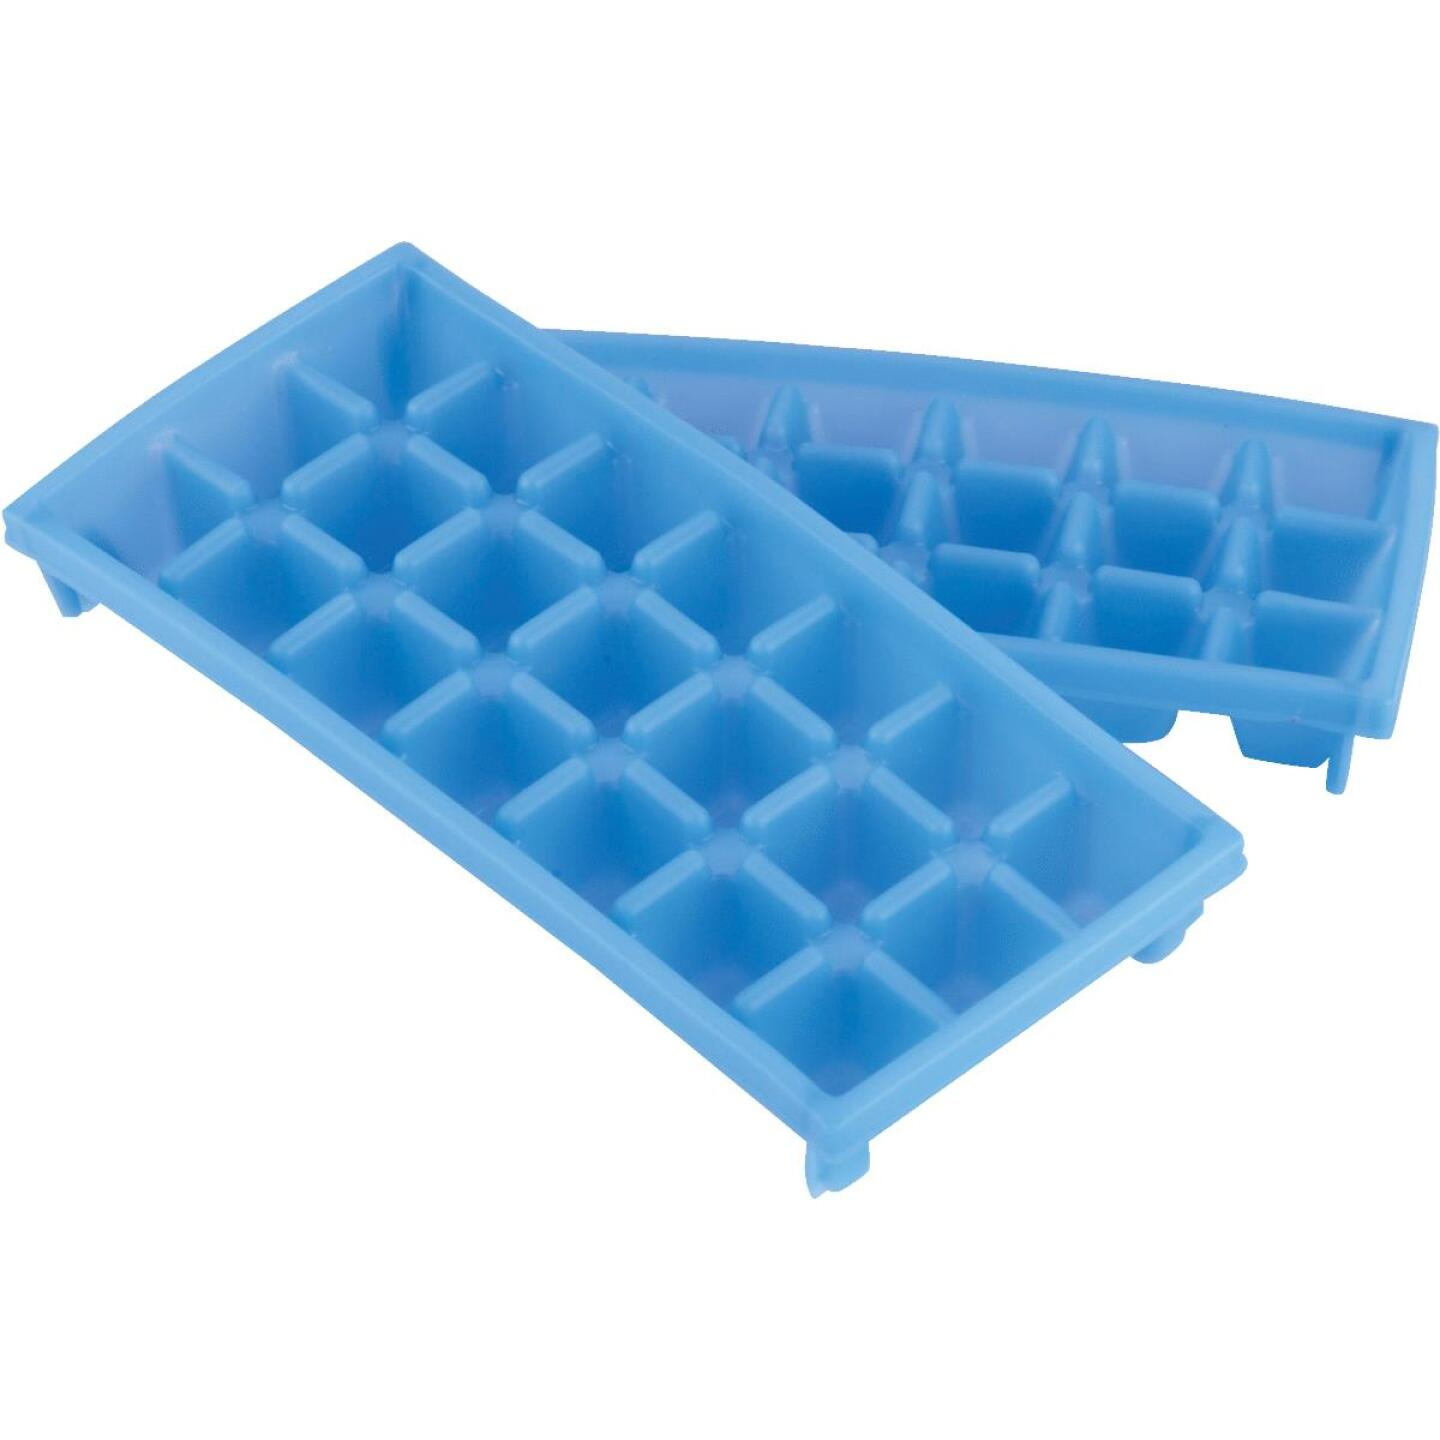 Camco 9 In. L x 4 In. RV Mini Ice Cube Tray, (2-Pack) Image 1